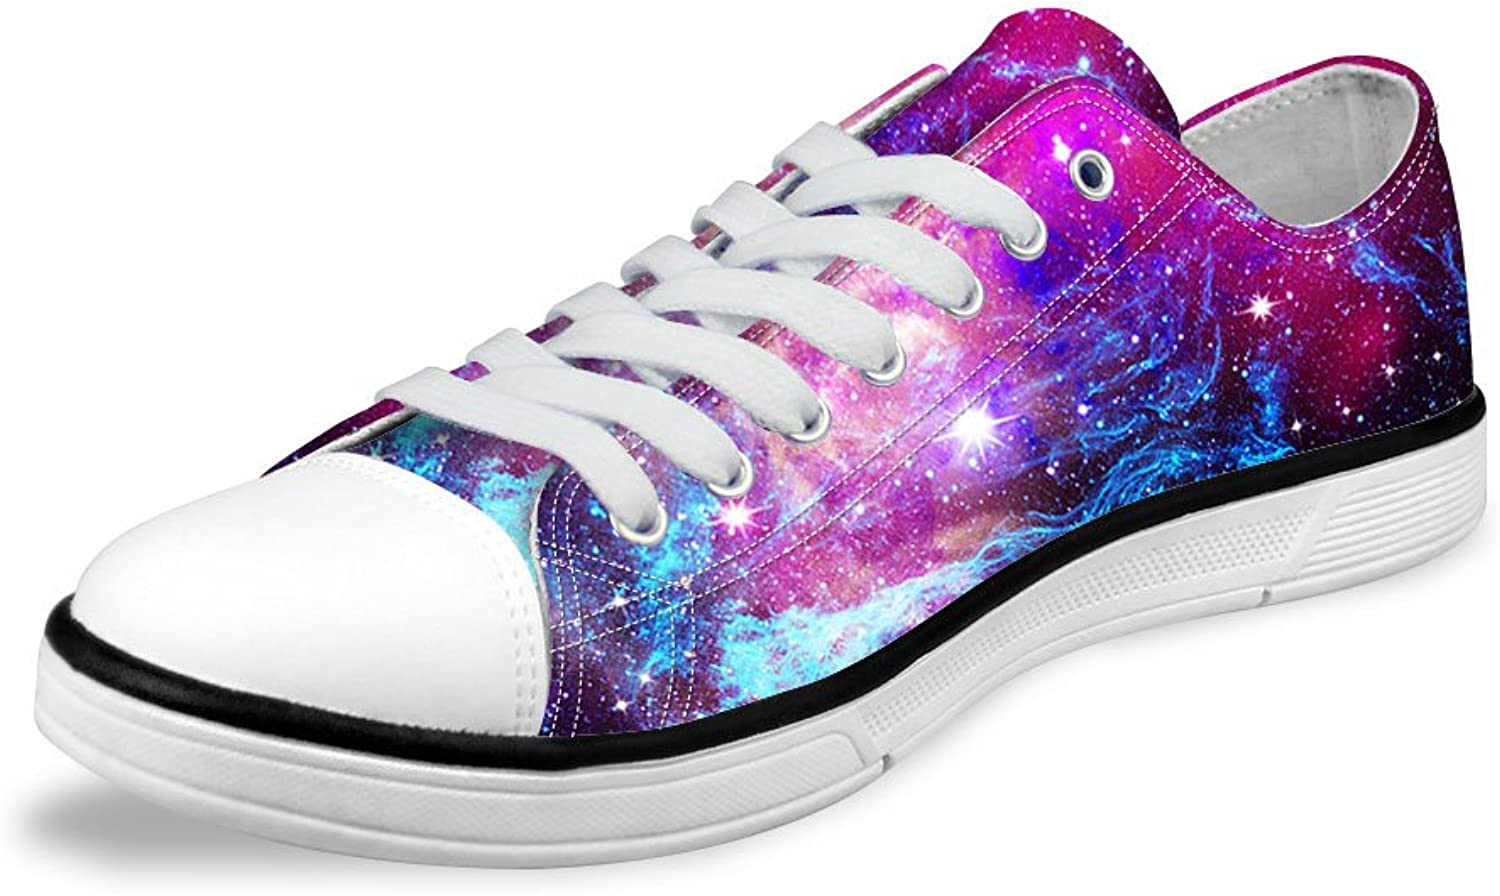 Micandle Purple Starry Pattern Womens Summer Low Top Canvas Sneakers shoes